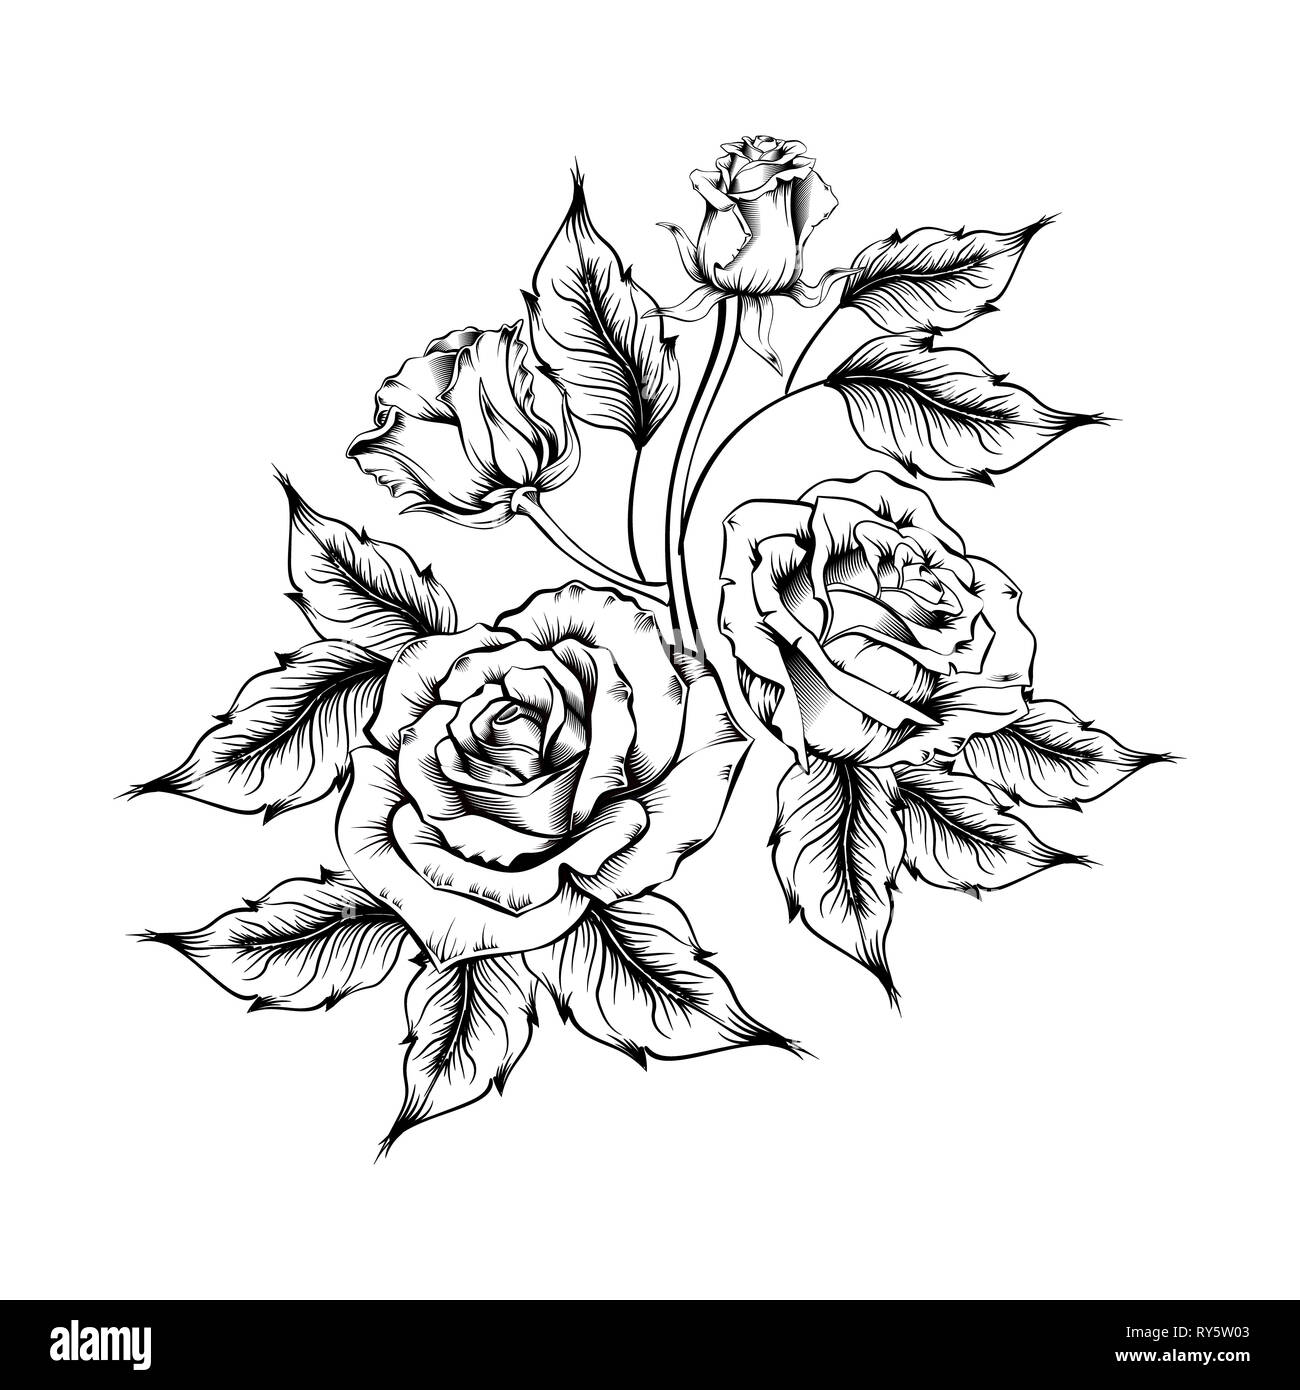 d98373d81f758 Rose tattoo. Silhouette of roses and leaves on a white background. Linework  style.